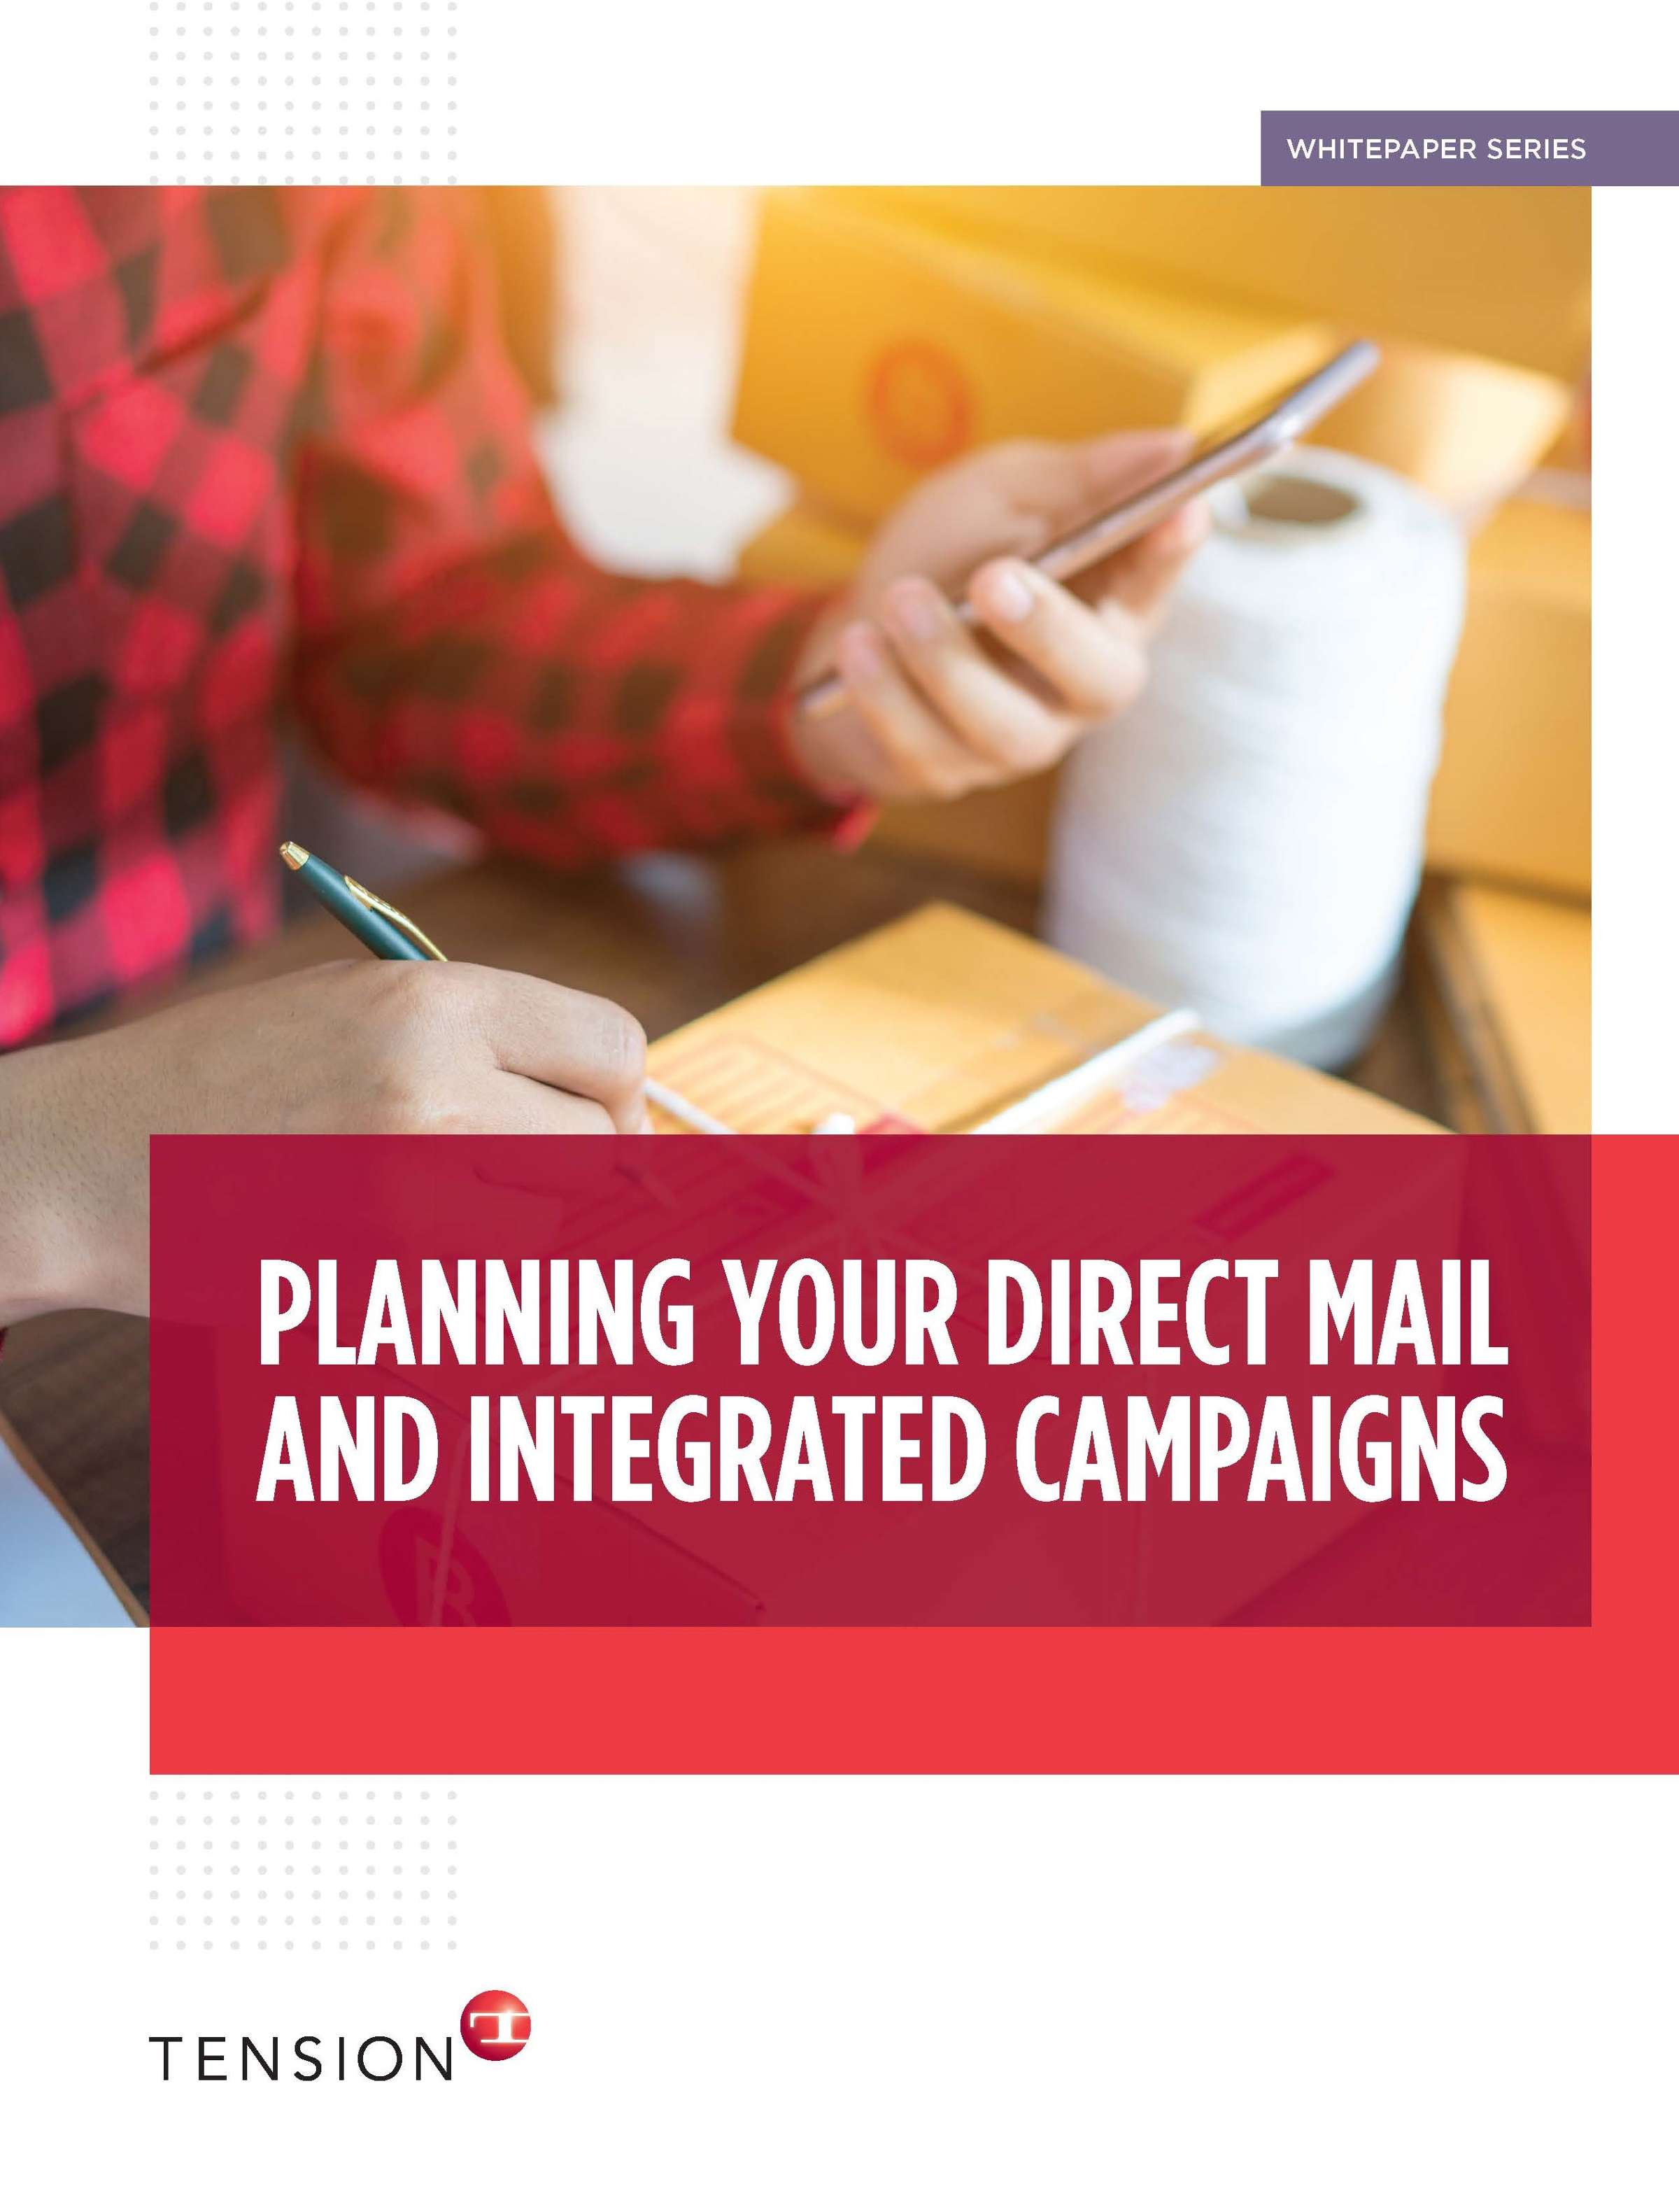 Planning your Direct Mail Campaign